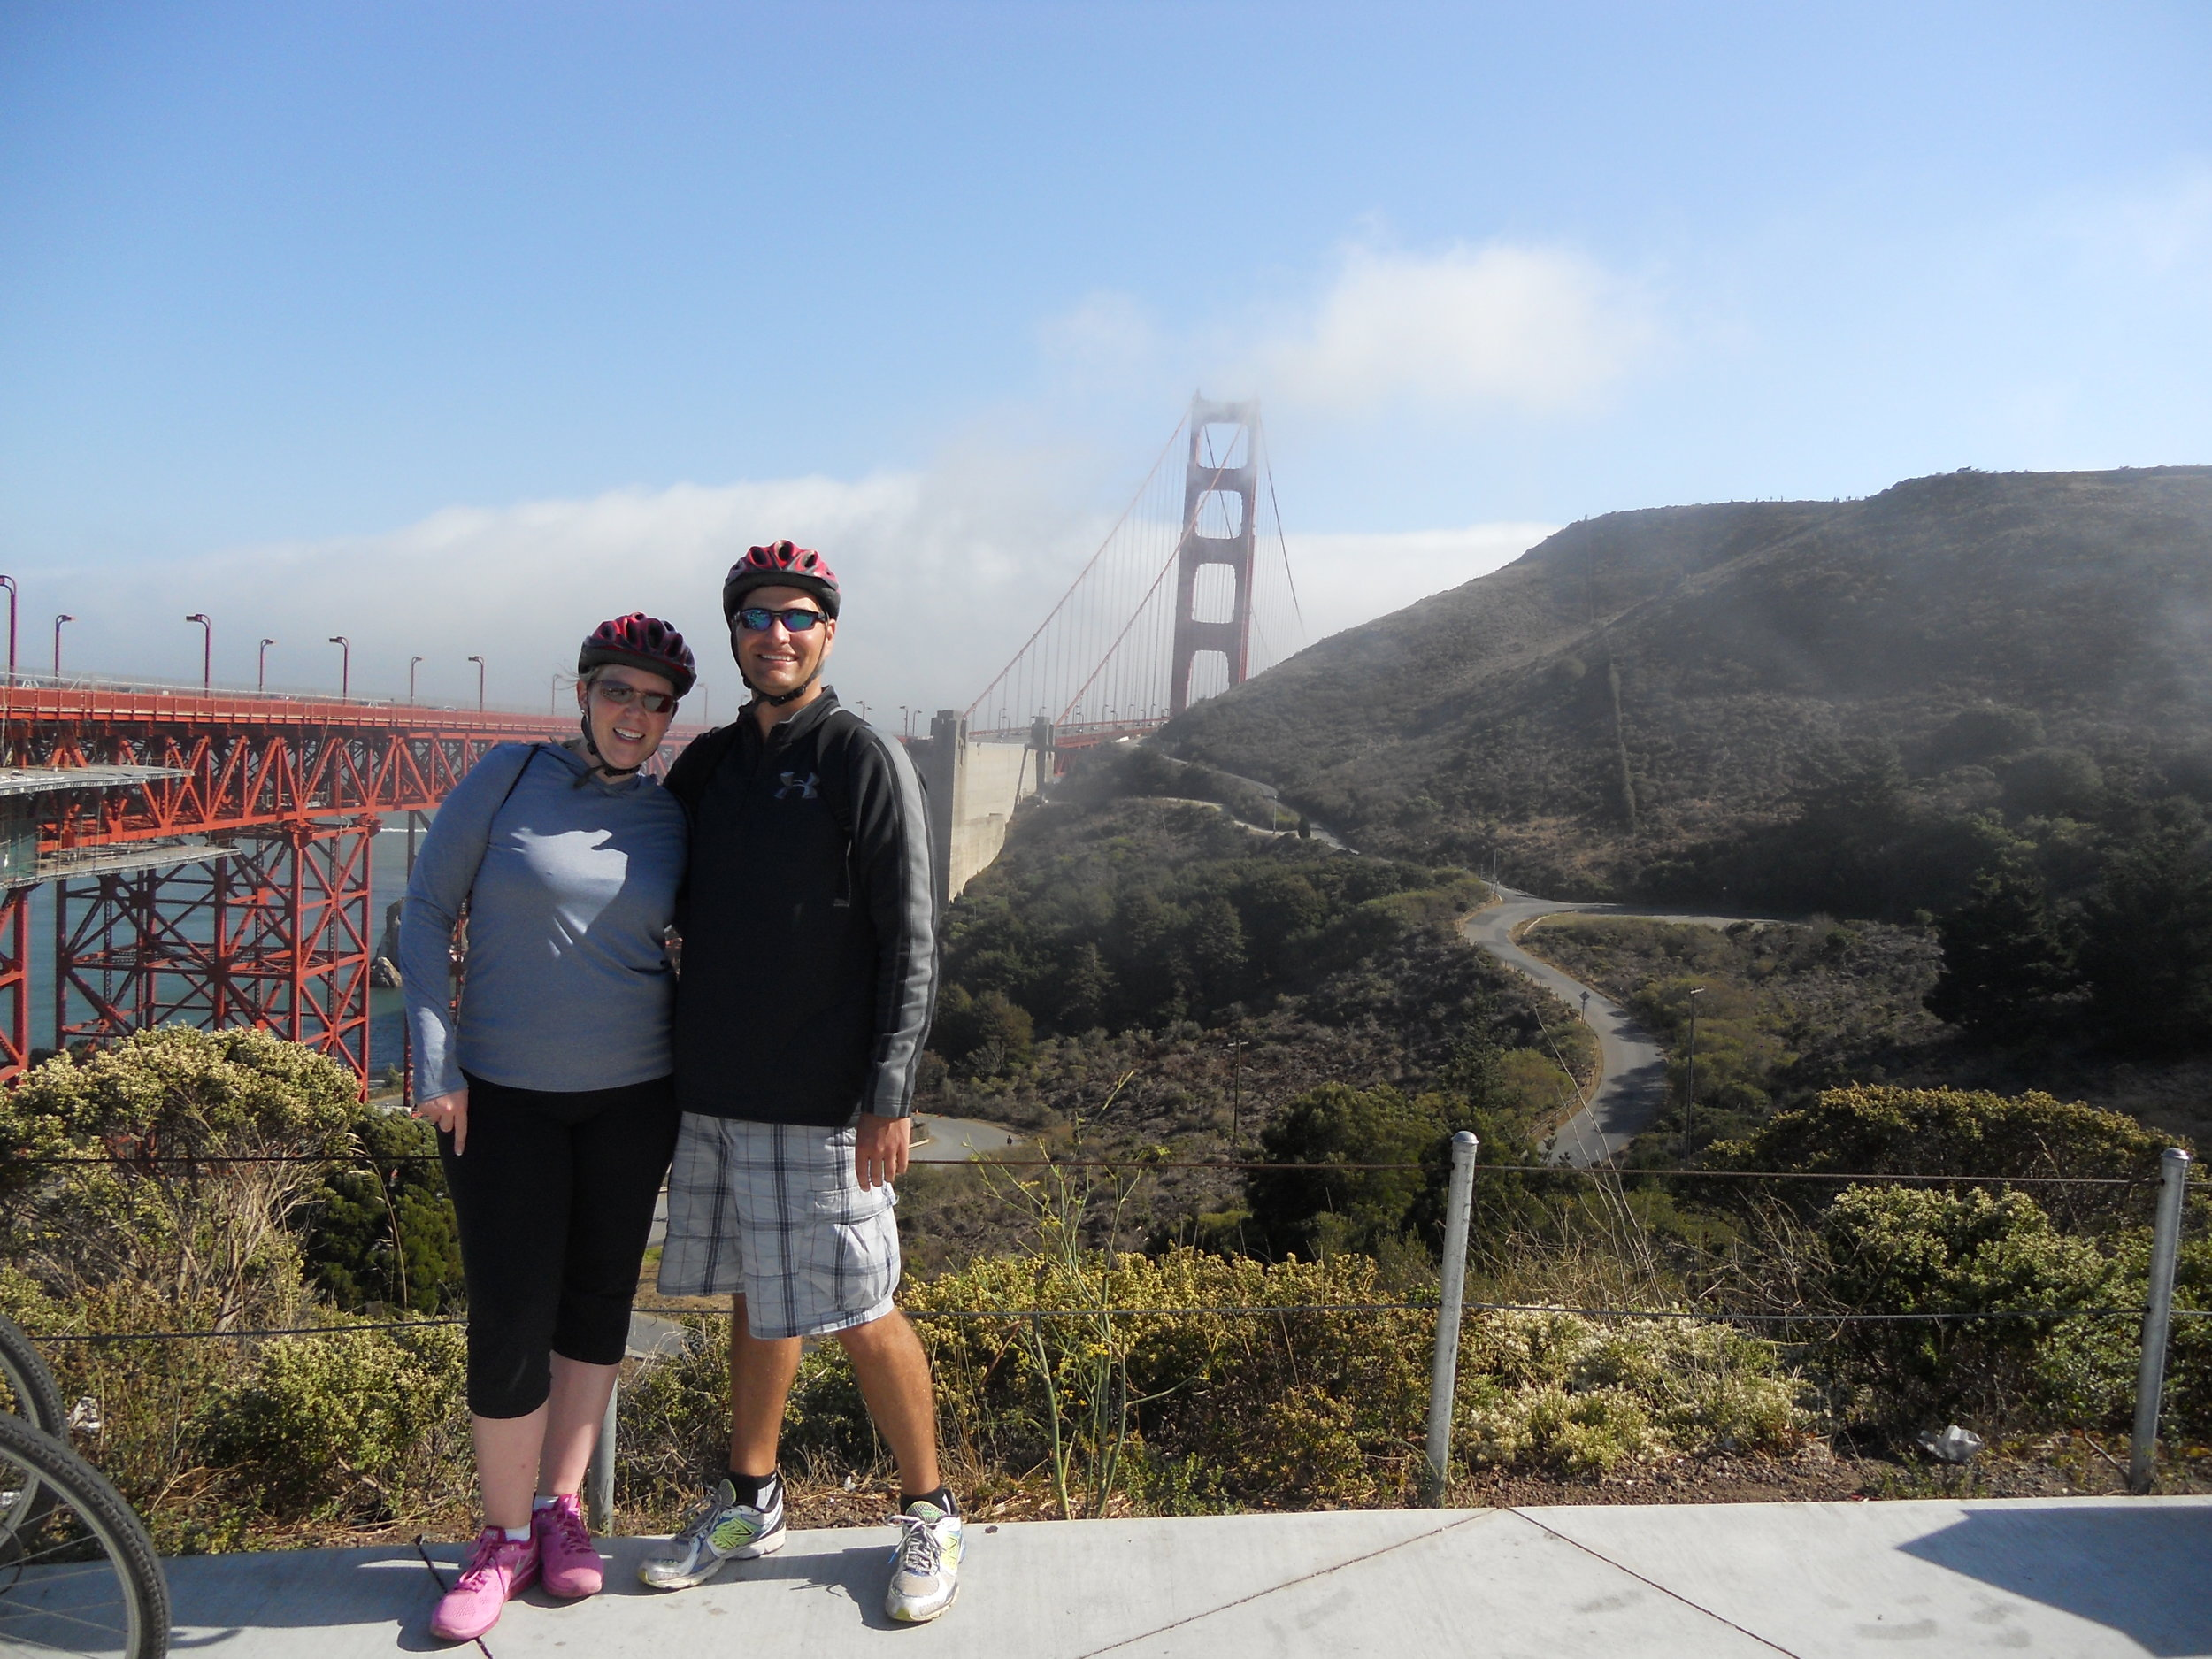 We conquered the bridge and have a picture to prove it!(Too bad the fog is covering the bridge in this shot though!)